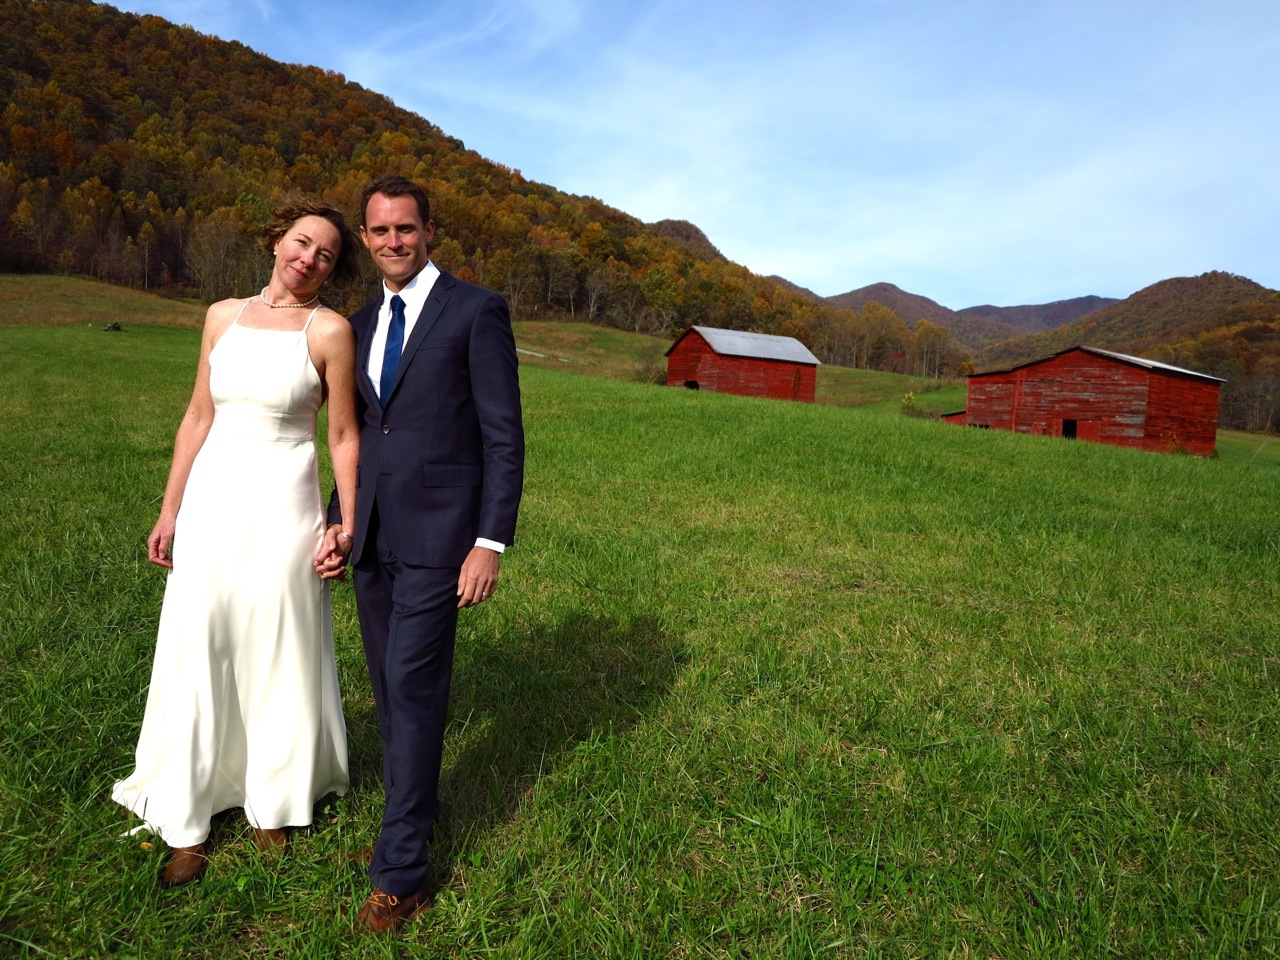 Hatton and Cameron tied the knot at Ivy Creek